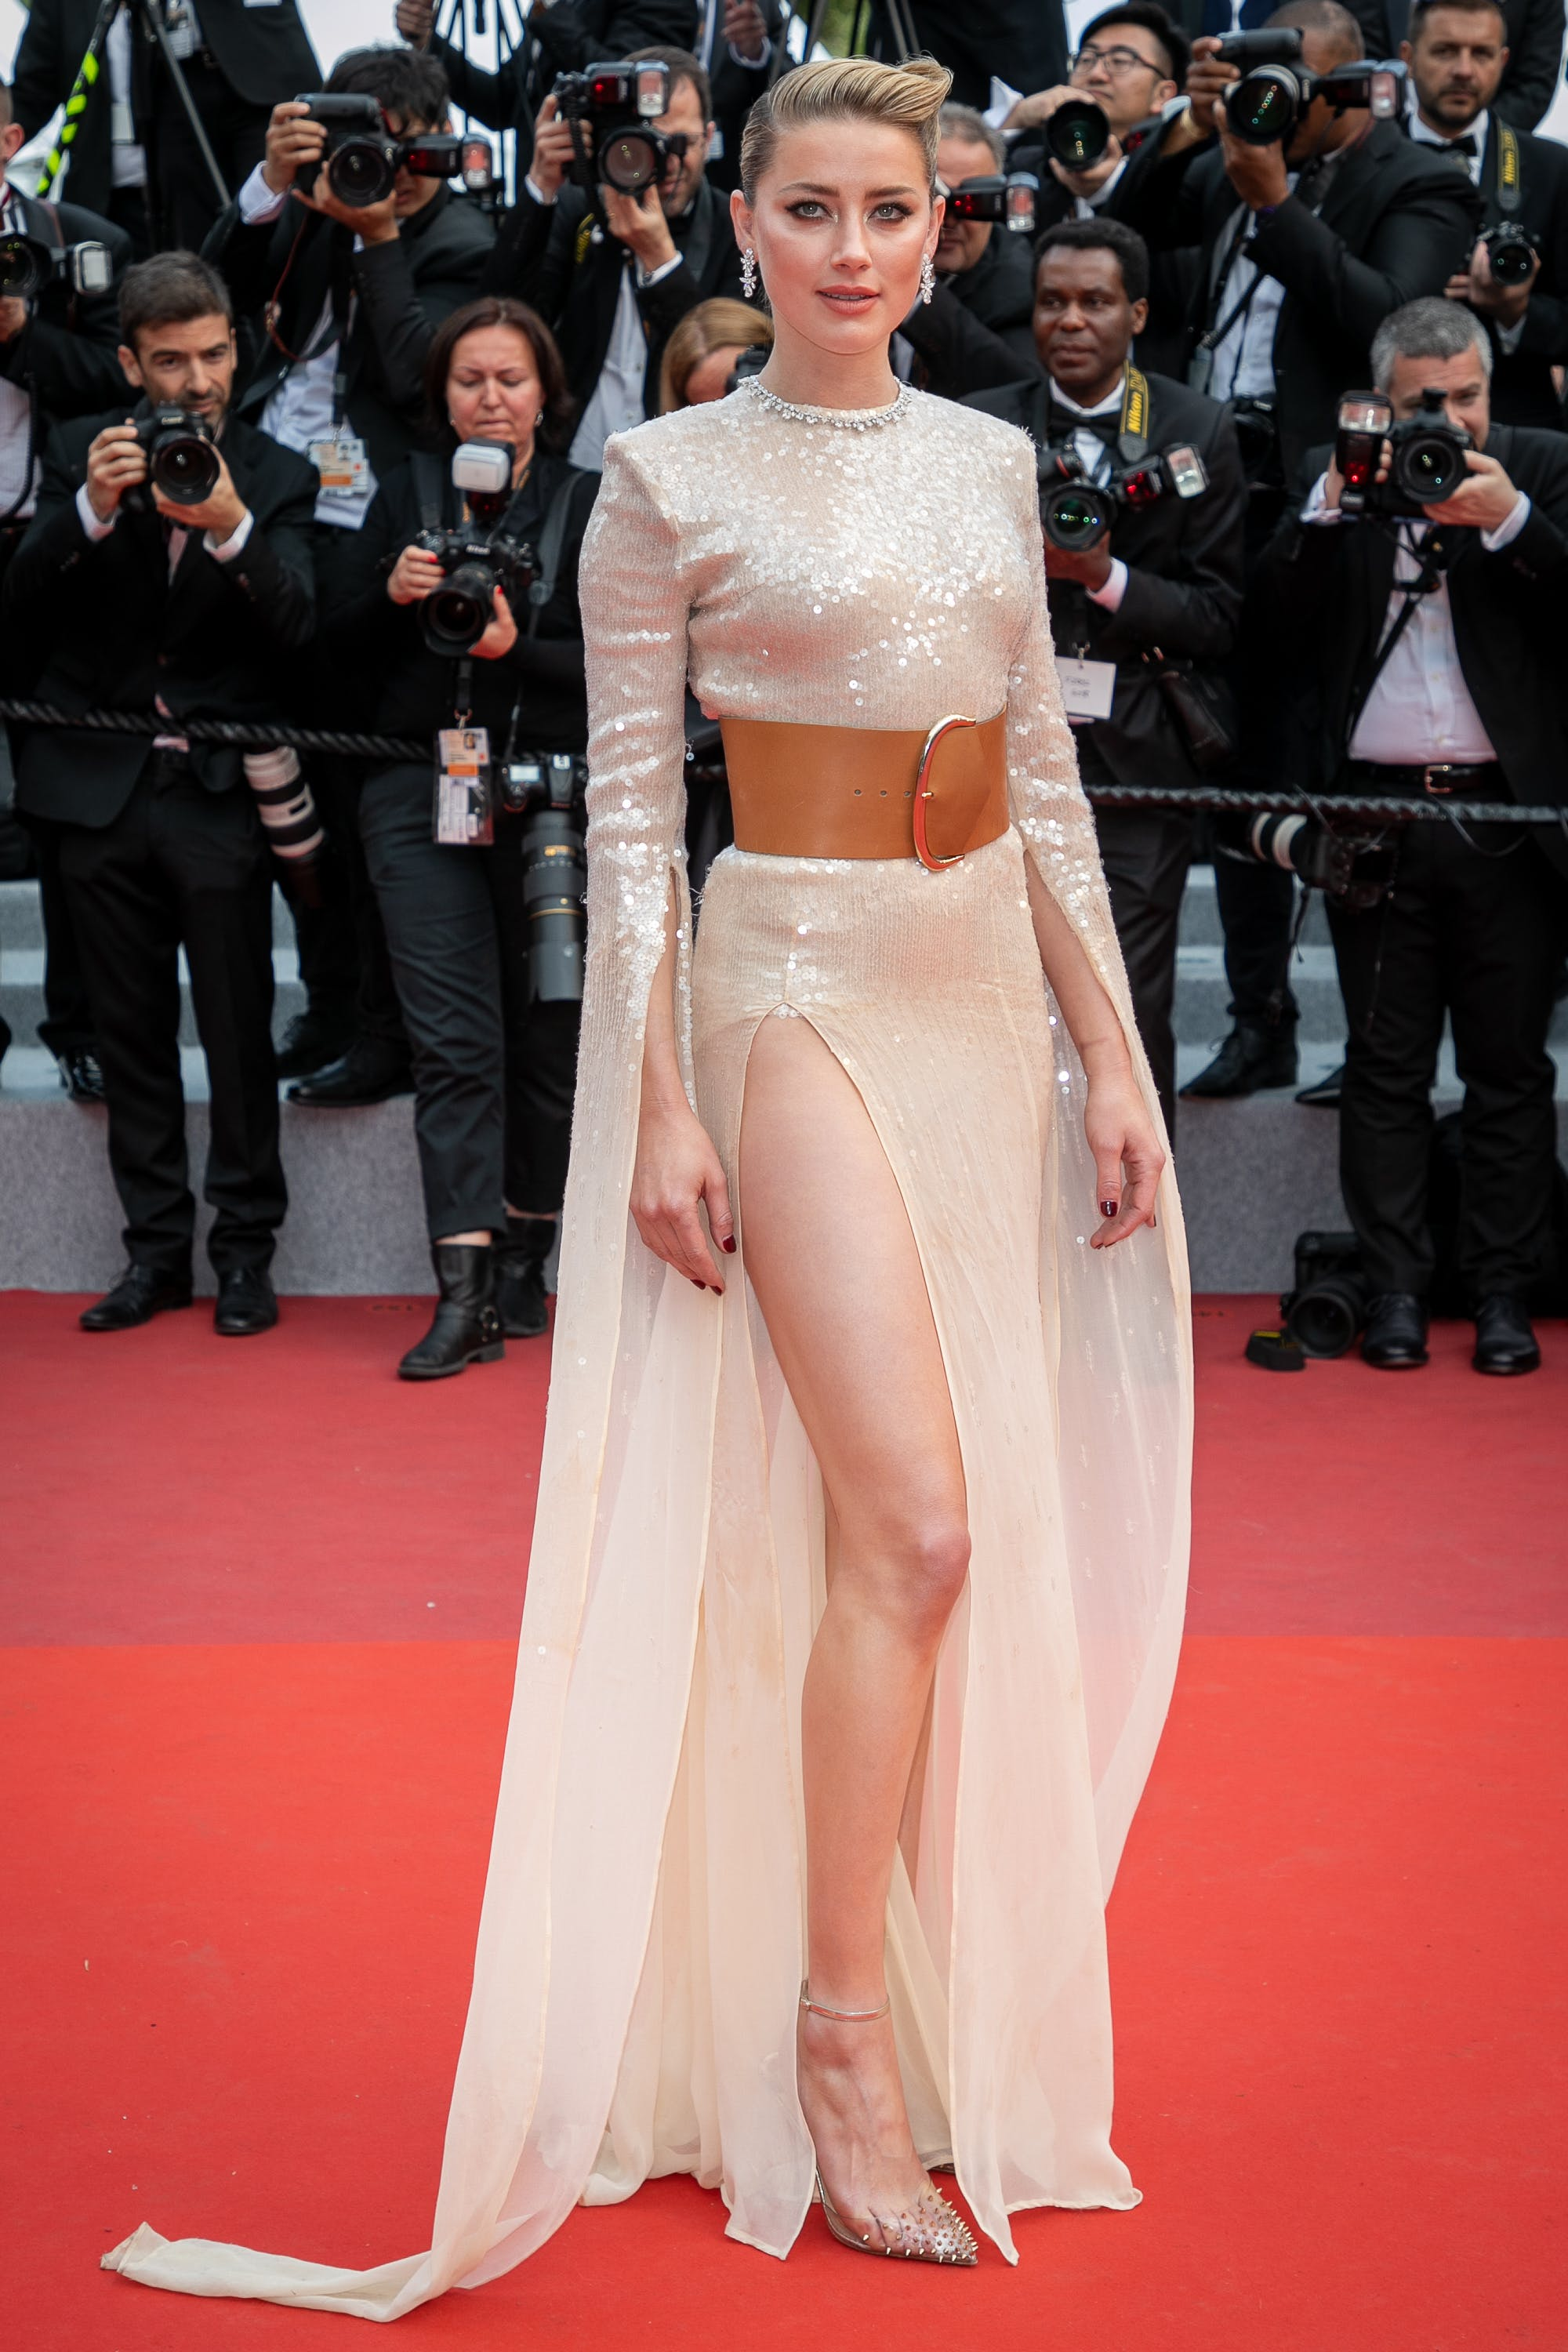 Amber Headr at the 72nd annual Cannes Film Festival